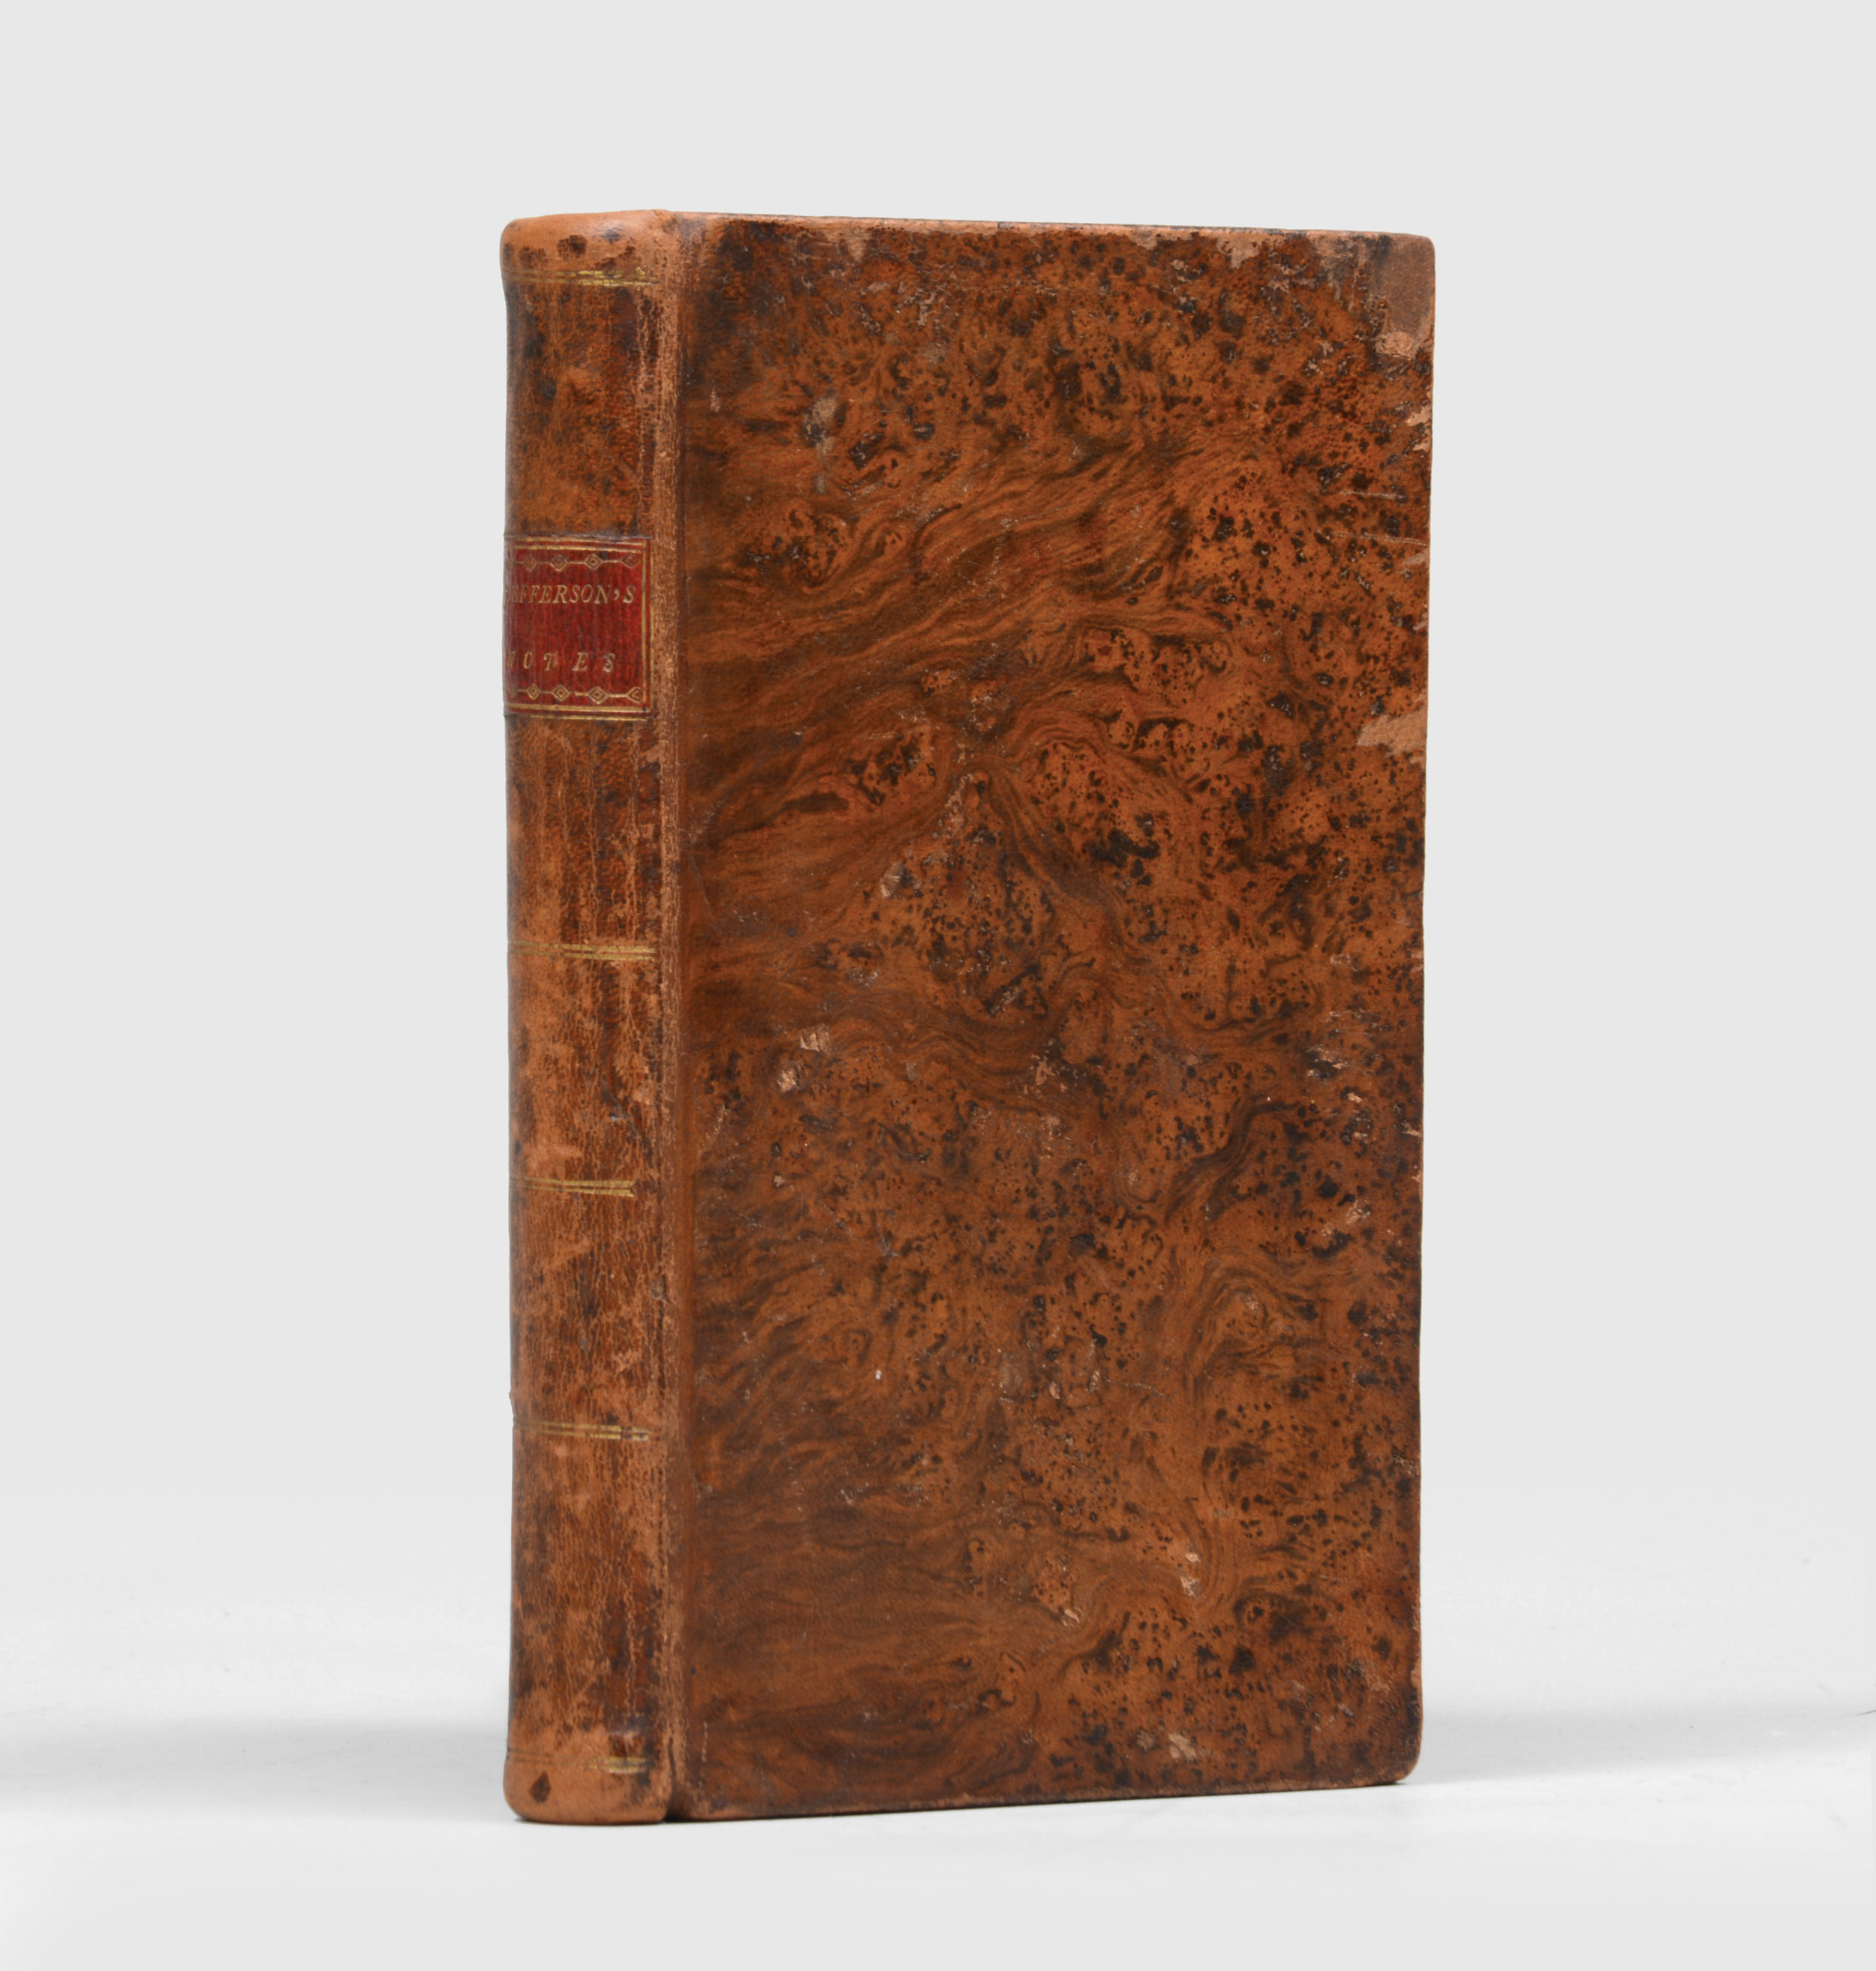 Offered by Peter Harrington Rare Books